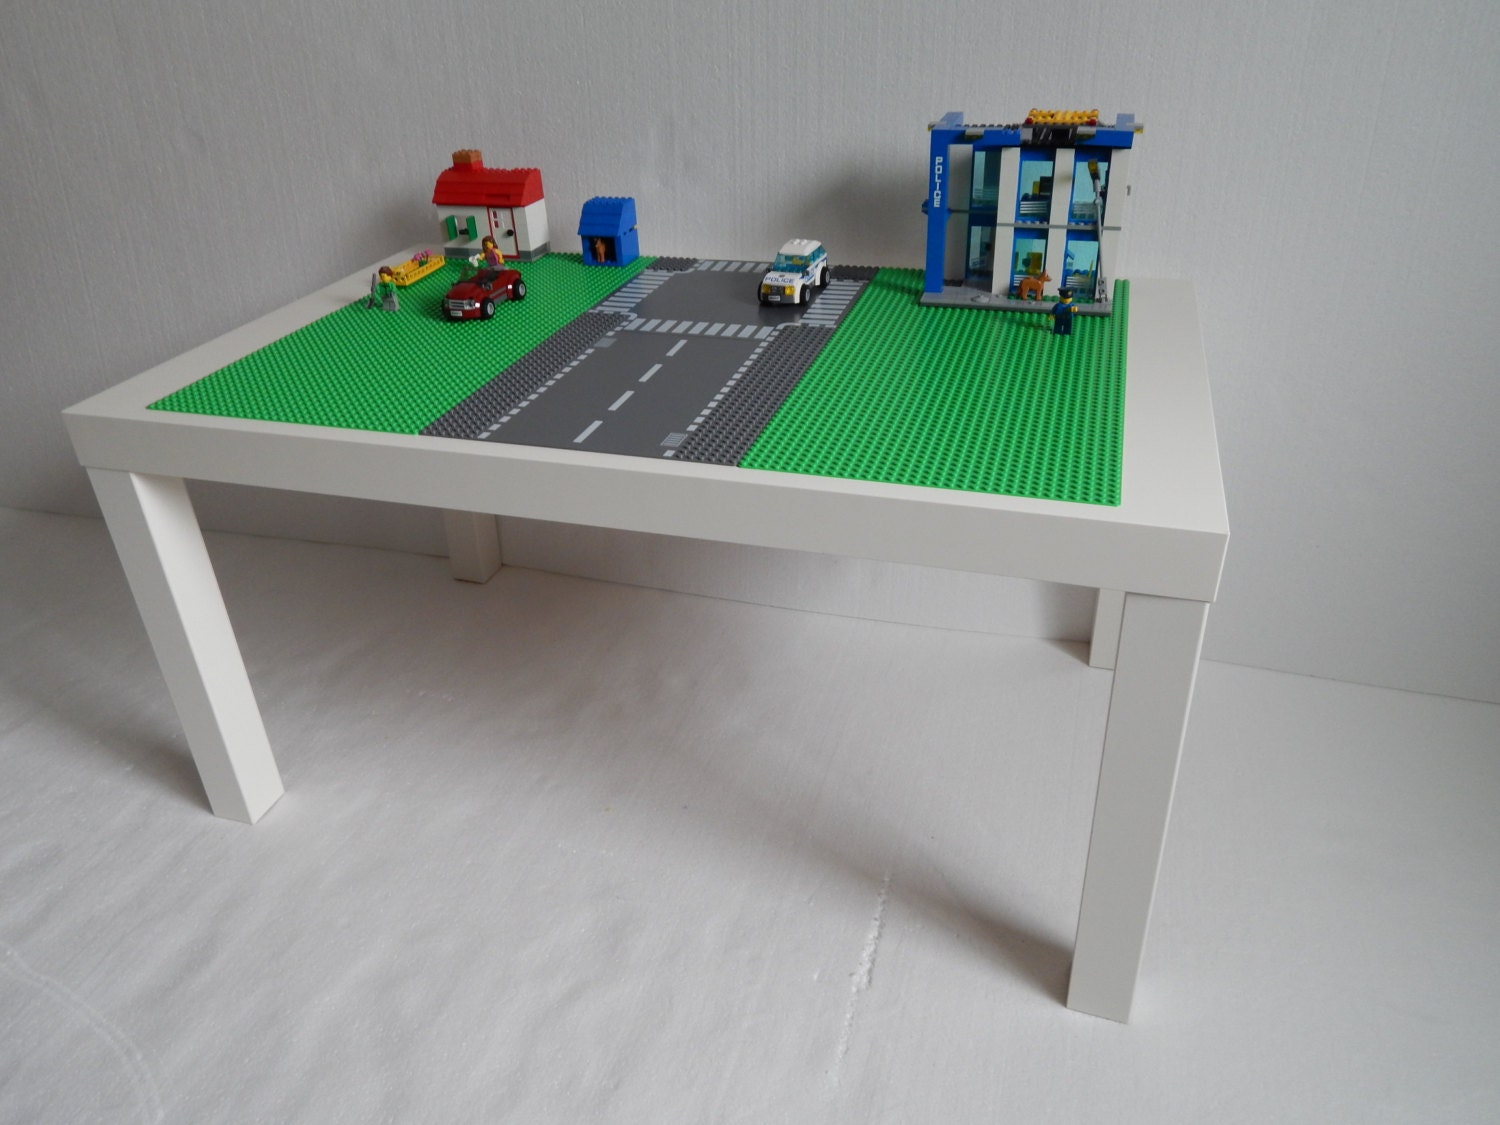 Large lego table 30x20 green with road way lego for Table design lego